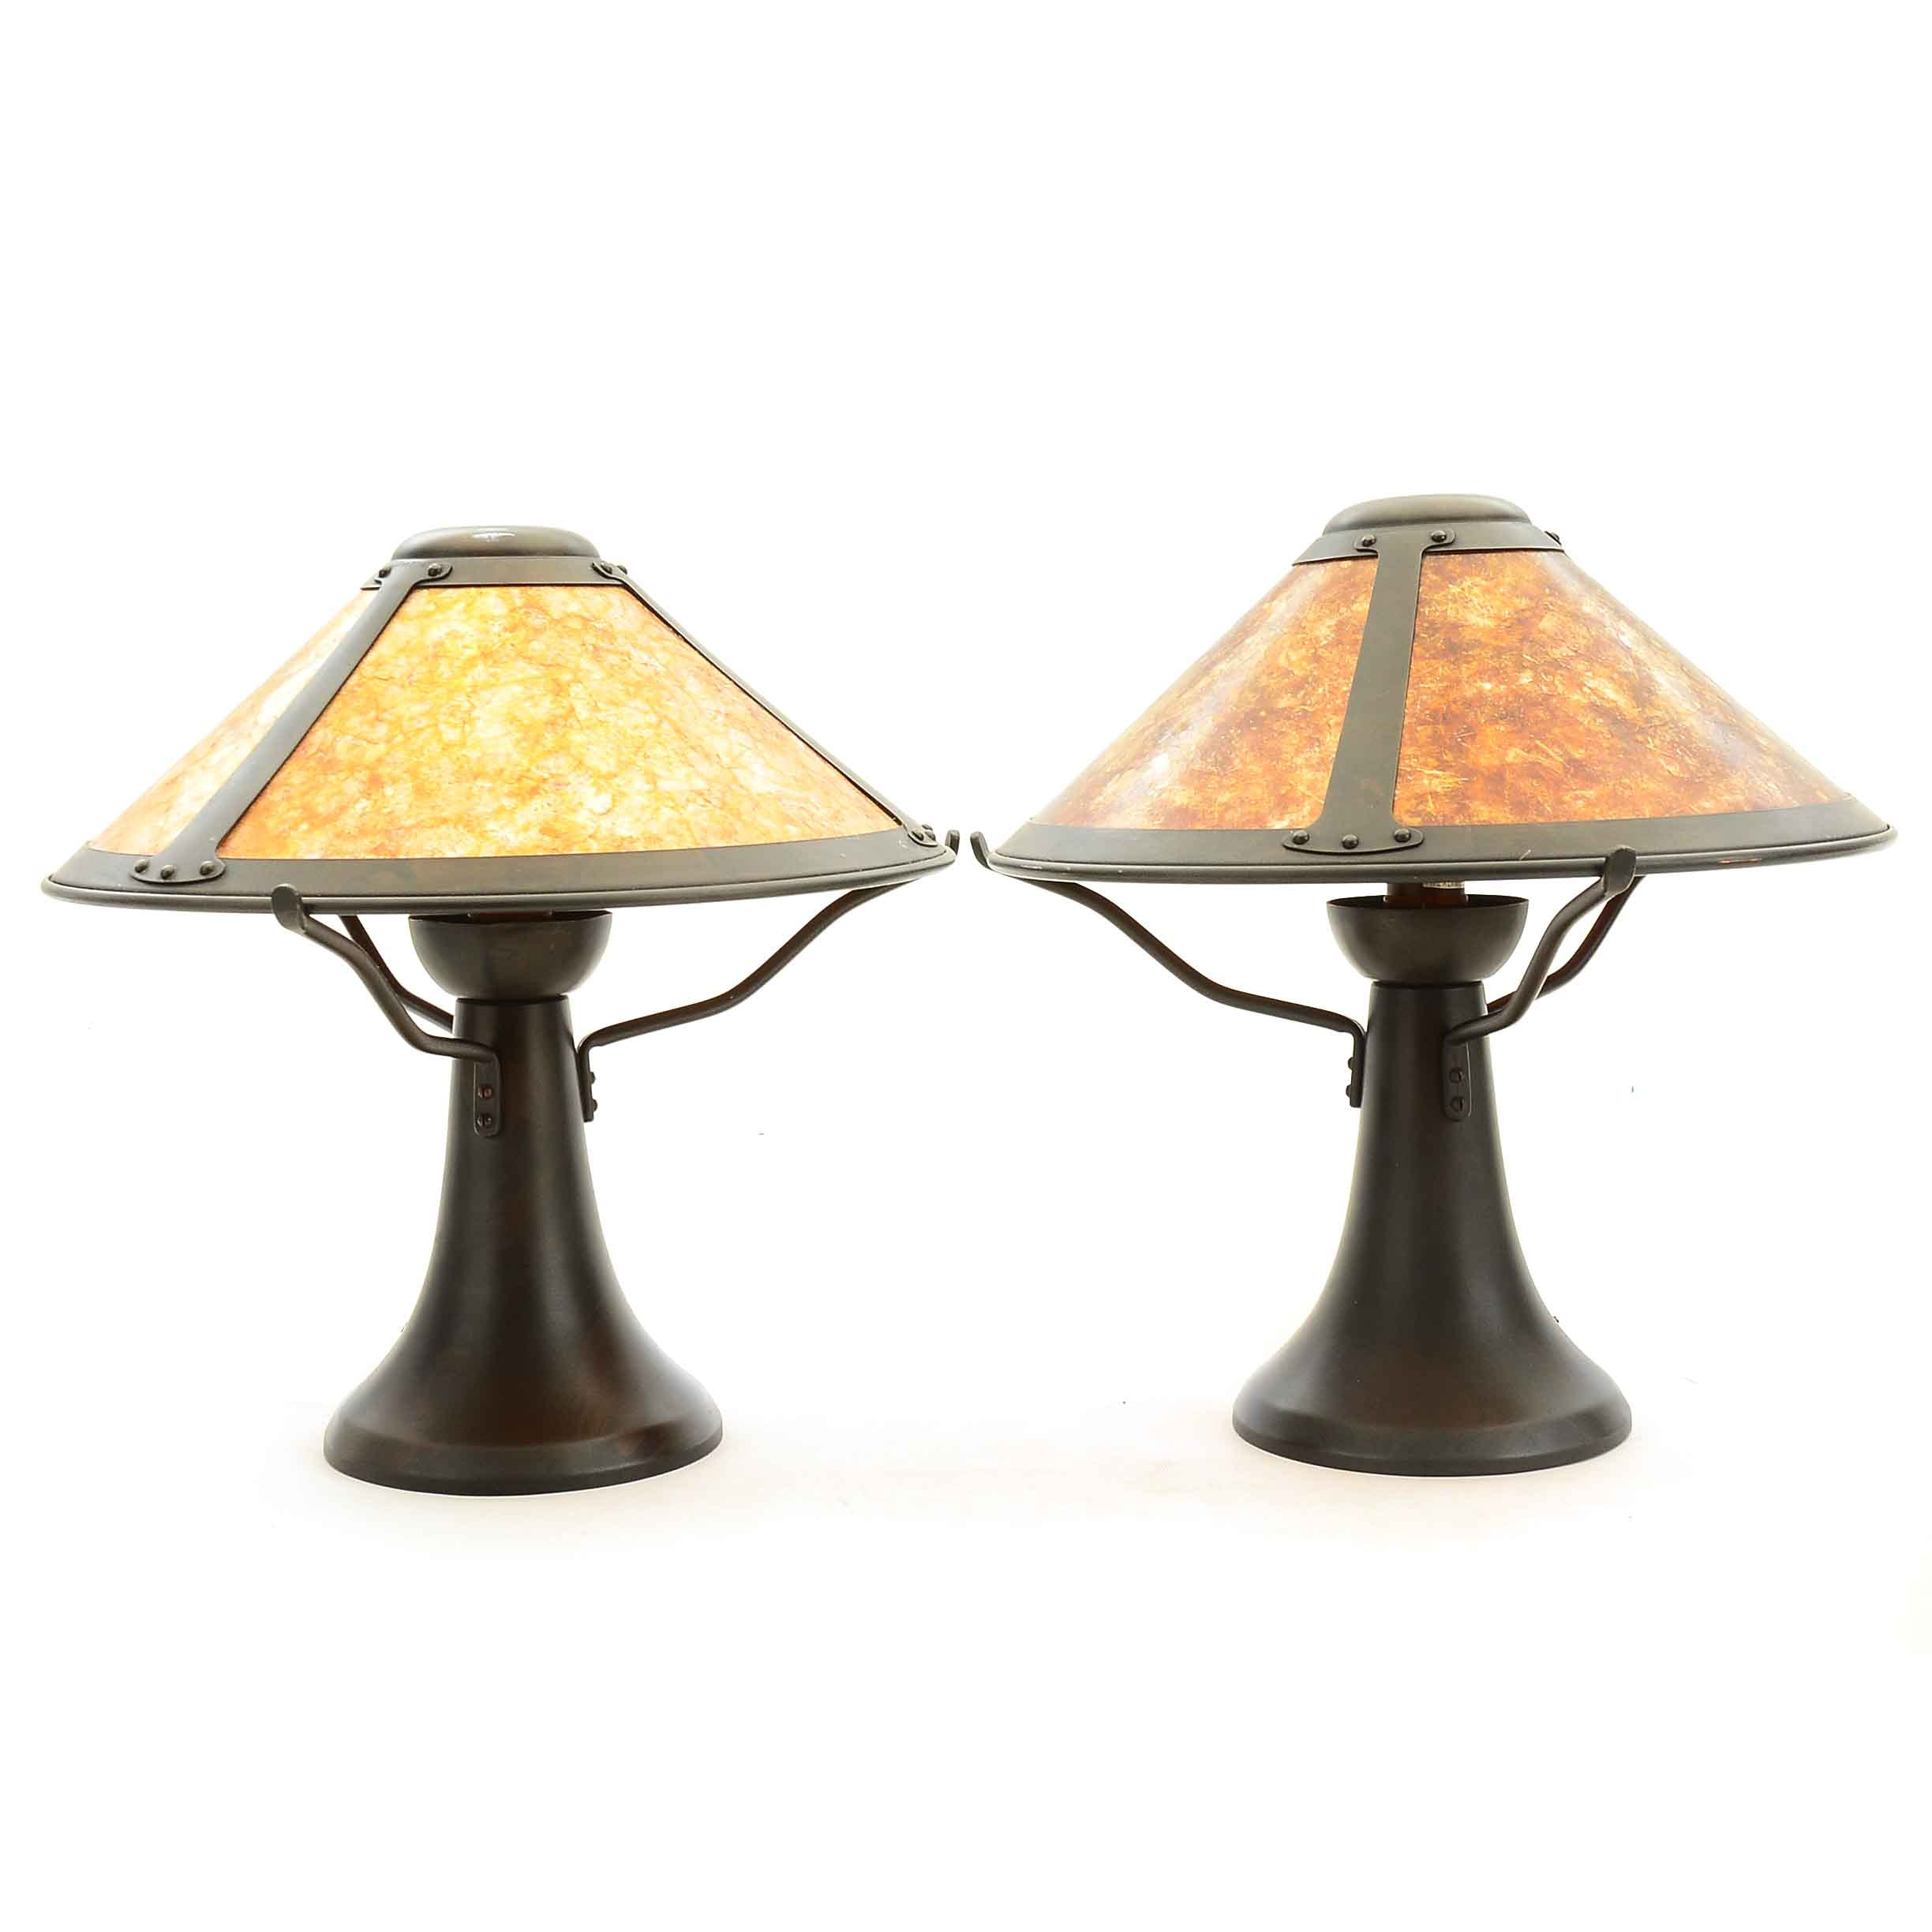 Arts and Crafts-Style Table Lamps